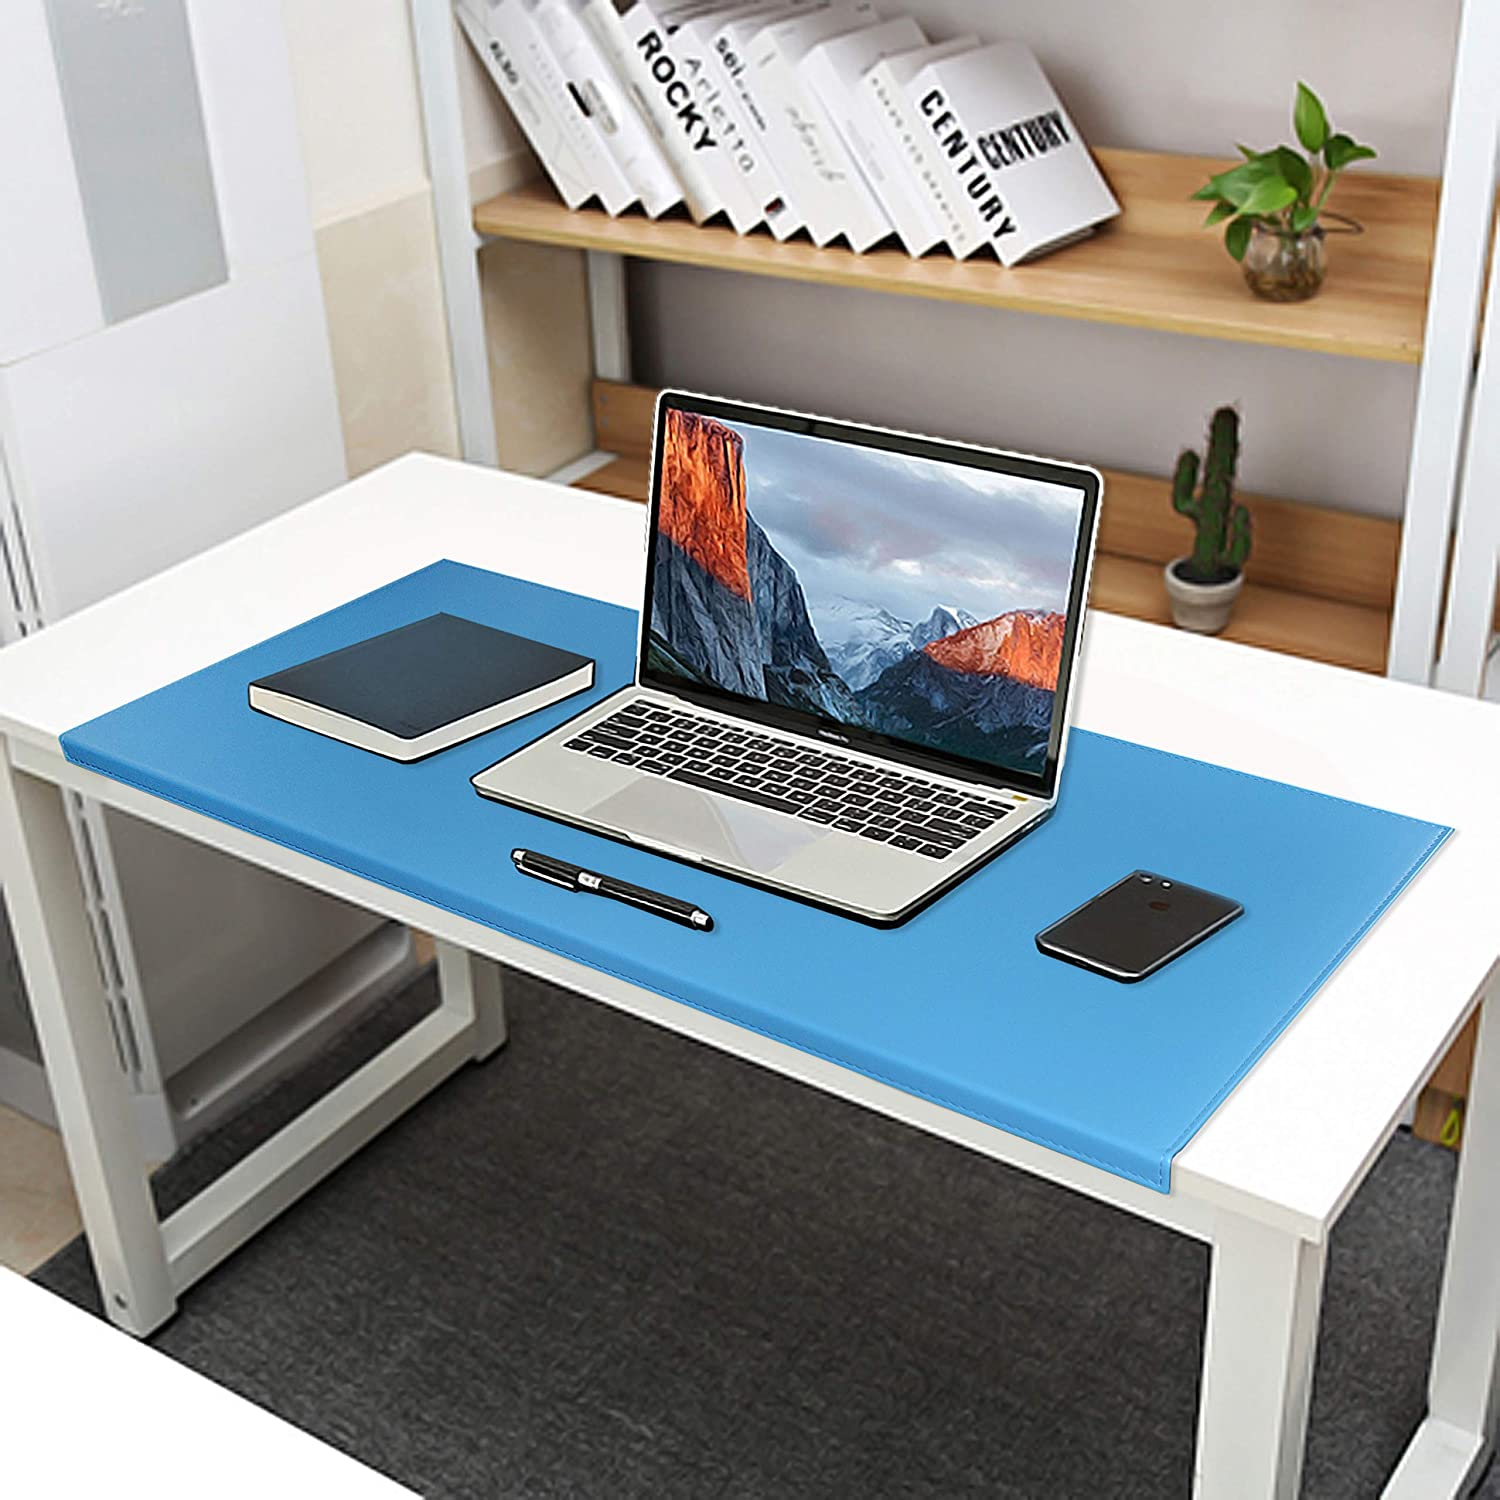 Non-Slip 35.4x 15.8 Soft Leather Surface Office Desk Mouse Mat Pad with Full Grip Fixation Lip Table Blotter Protector(Sky Blue